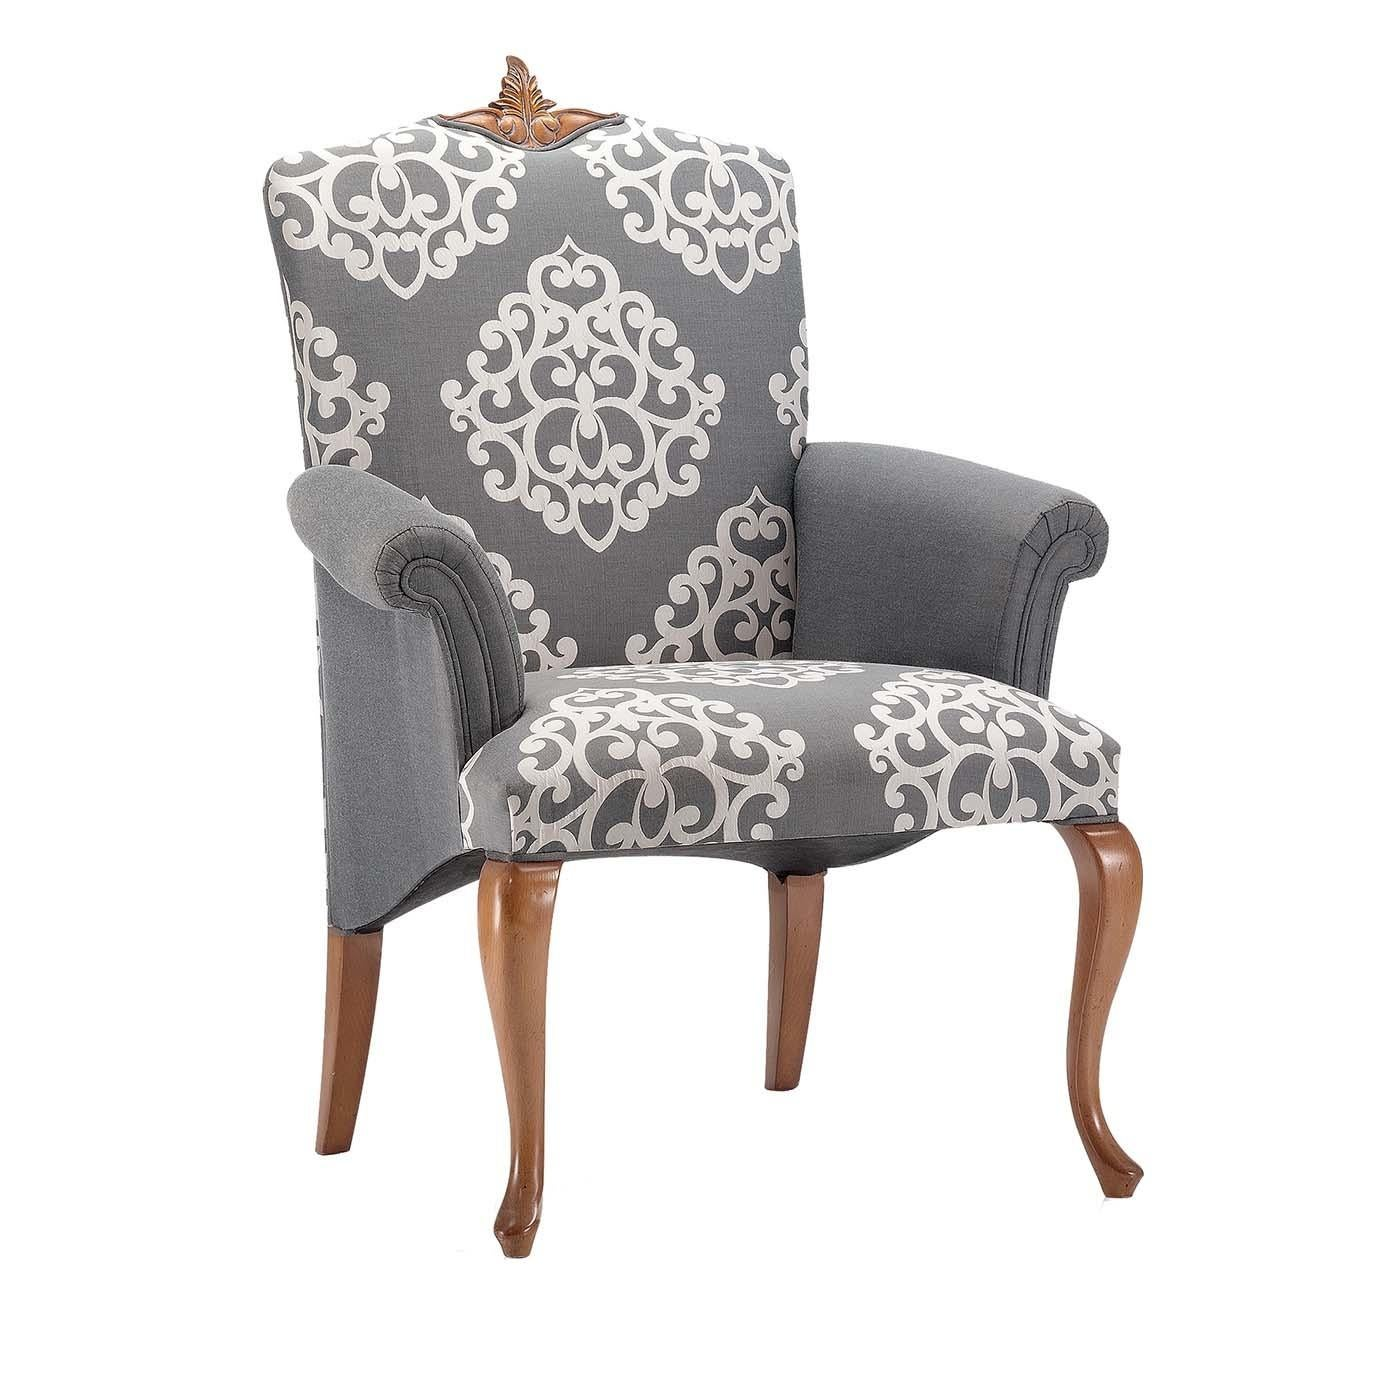 Damask Chair Gray Damask Chair With Armrests